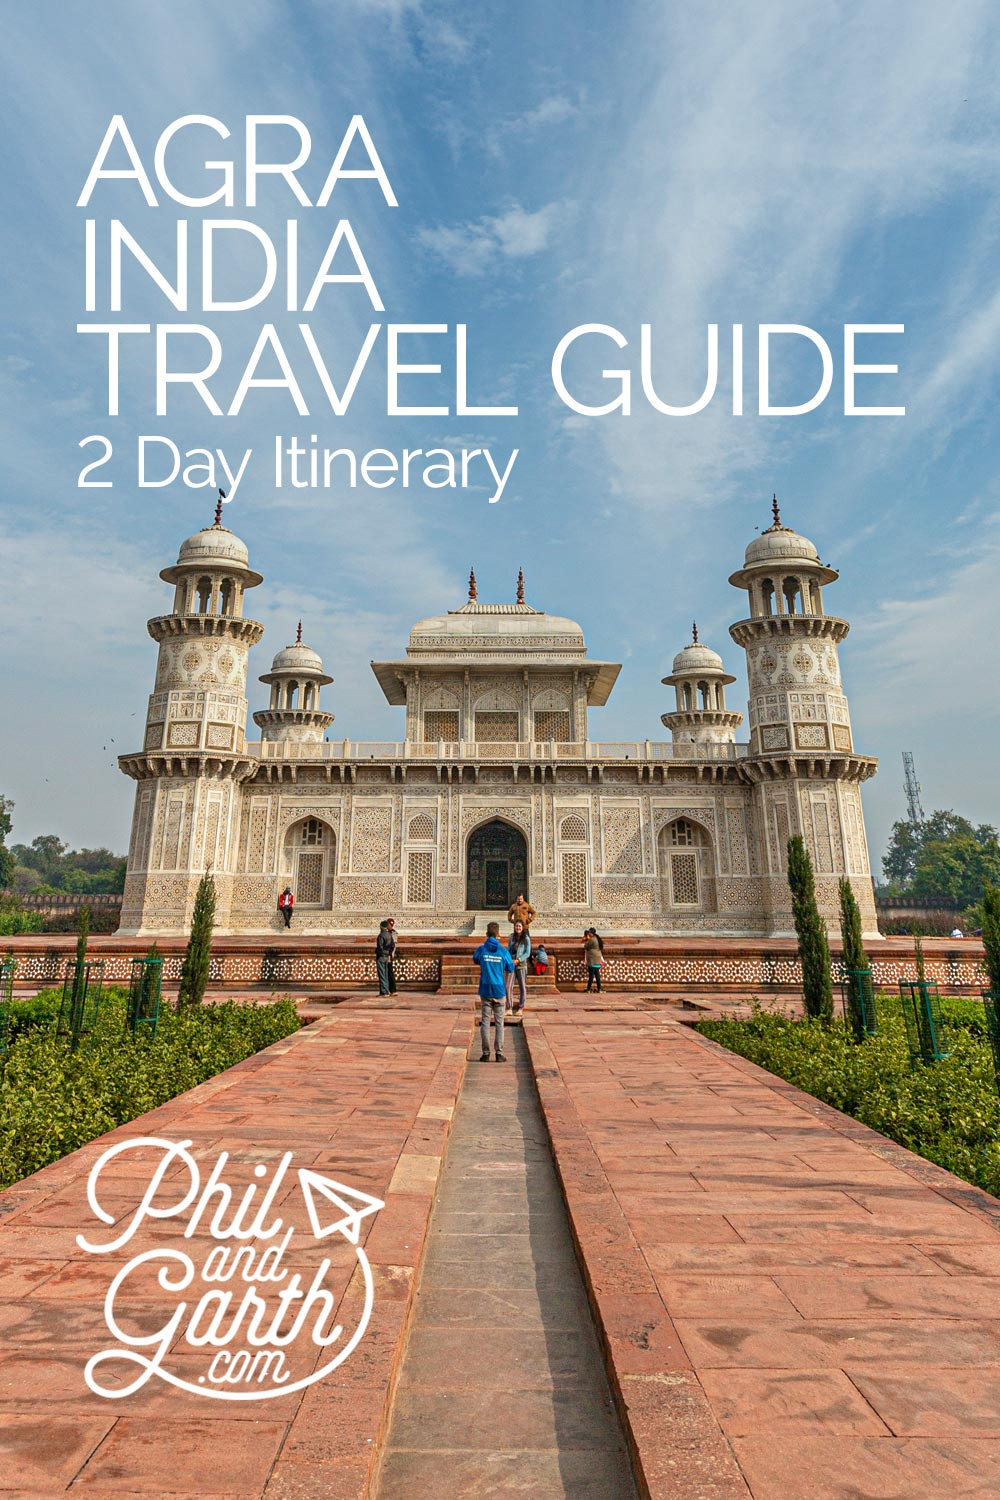 Agra Itinerary India and Travel Guide by Phil and Garth